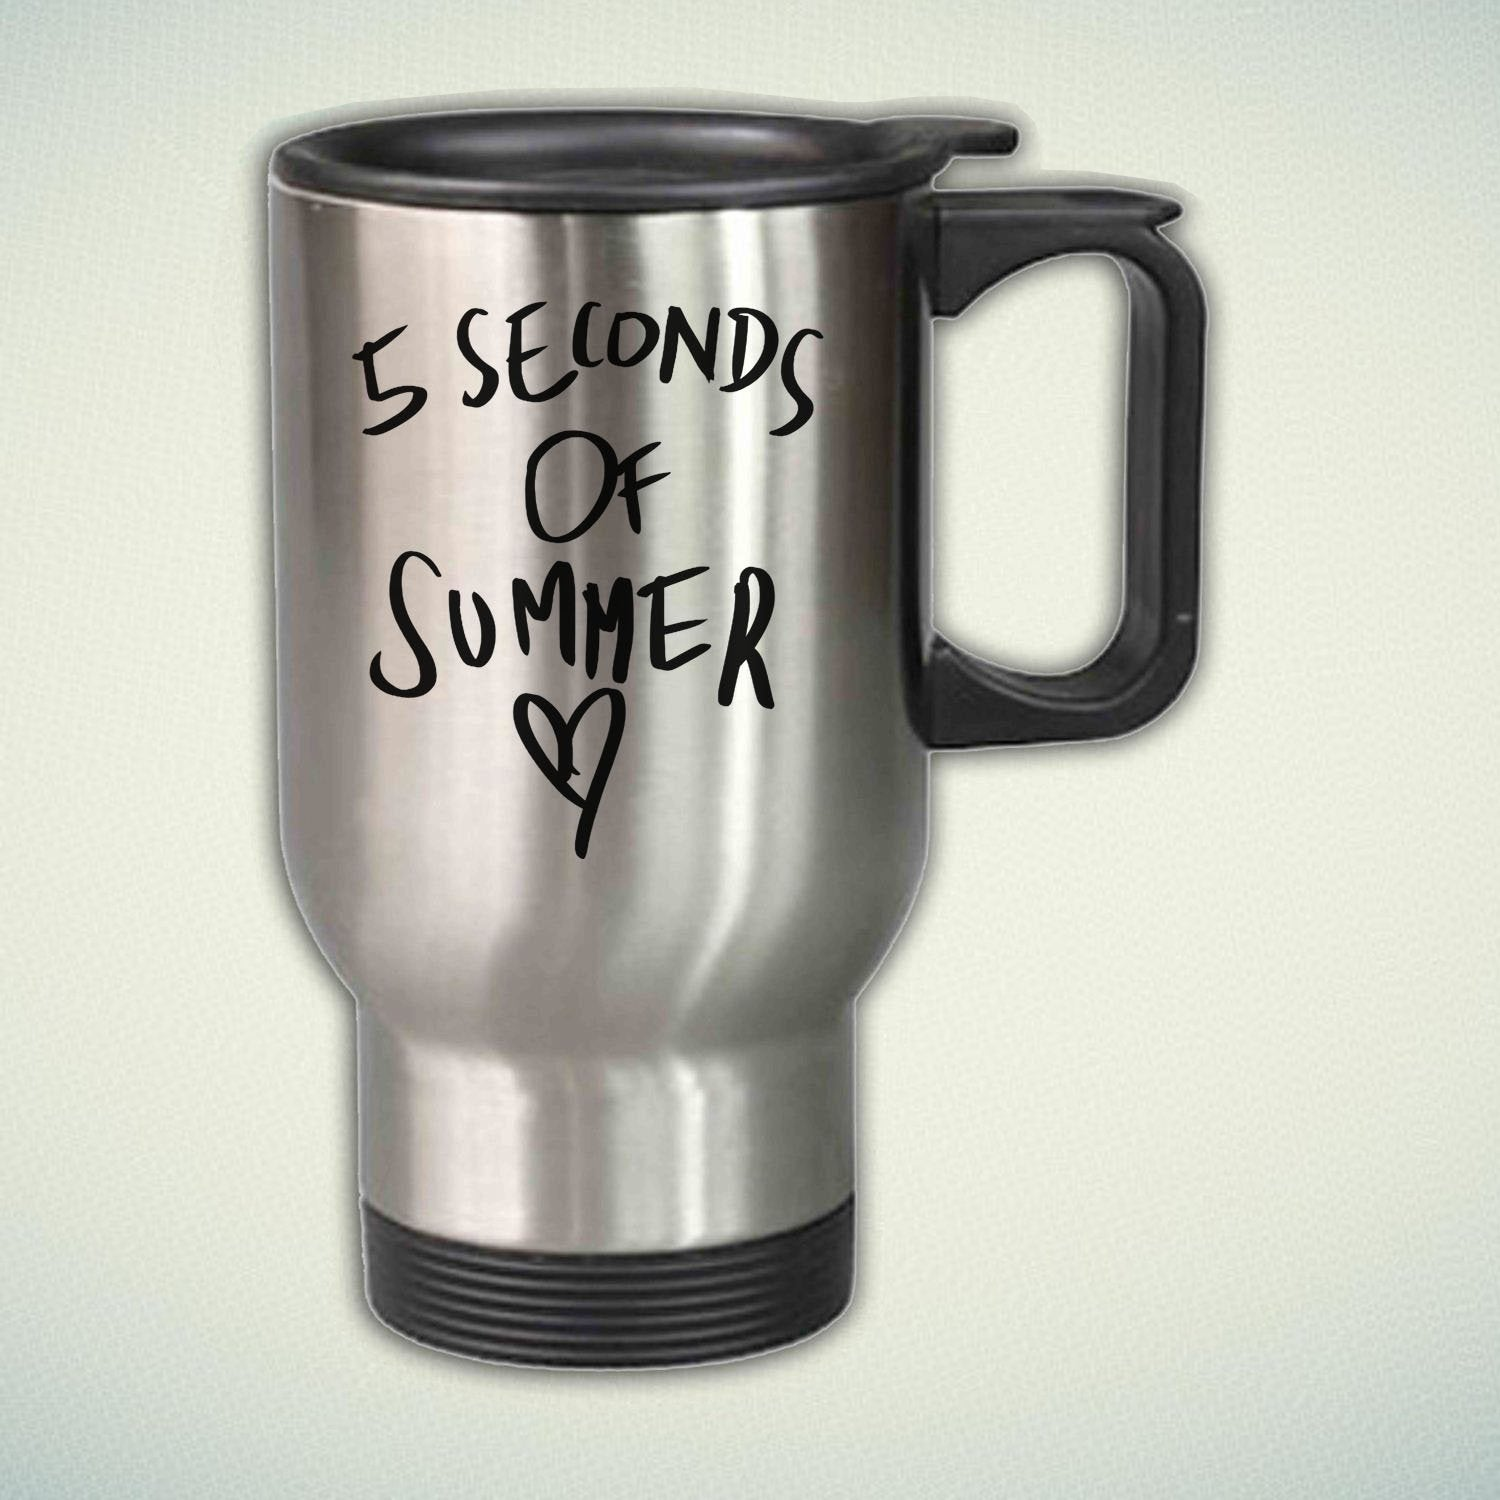 5 Seconds Of Summer Love 14oz Stainless Steel Travel Mug